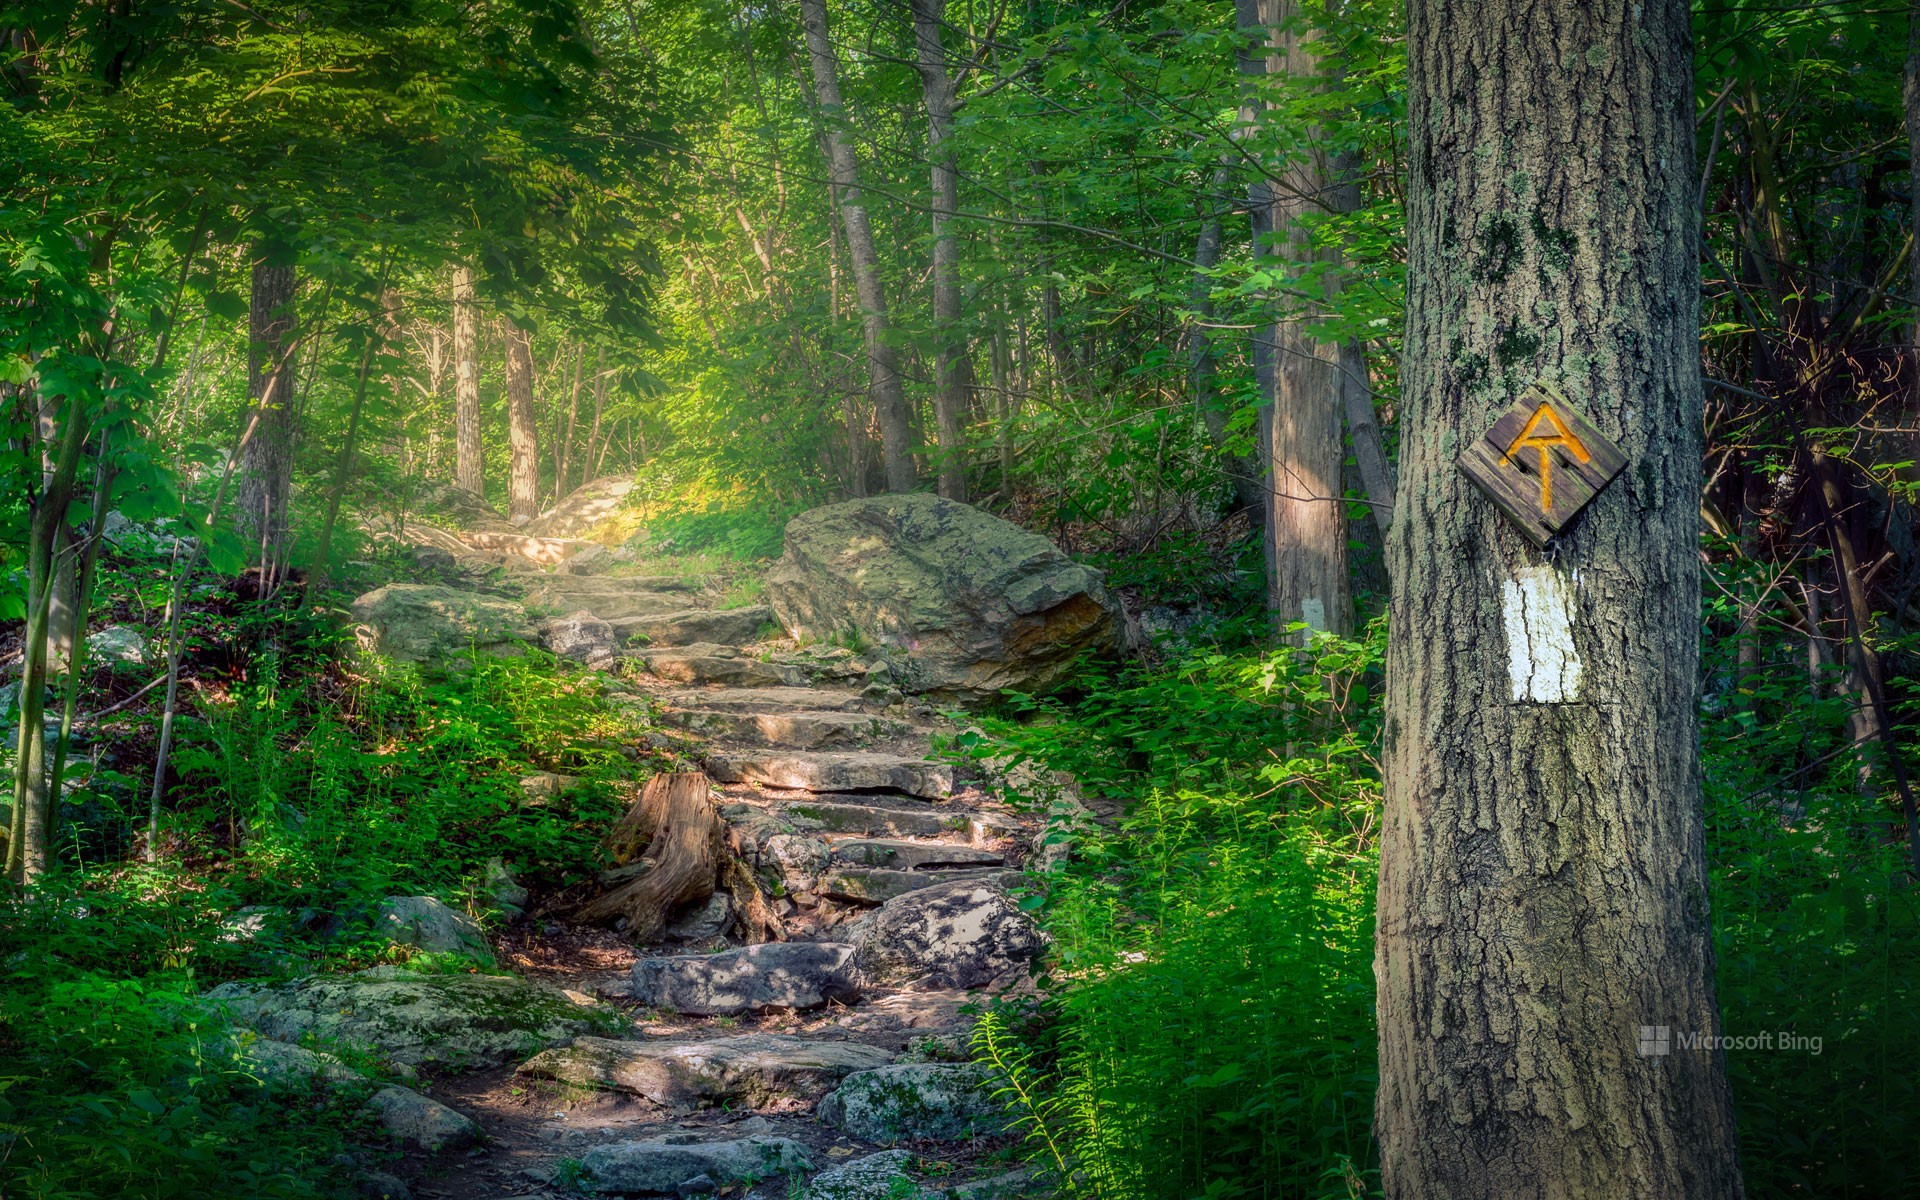 Appalachian Trail, Stokes State Forest, New Jersey, USA